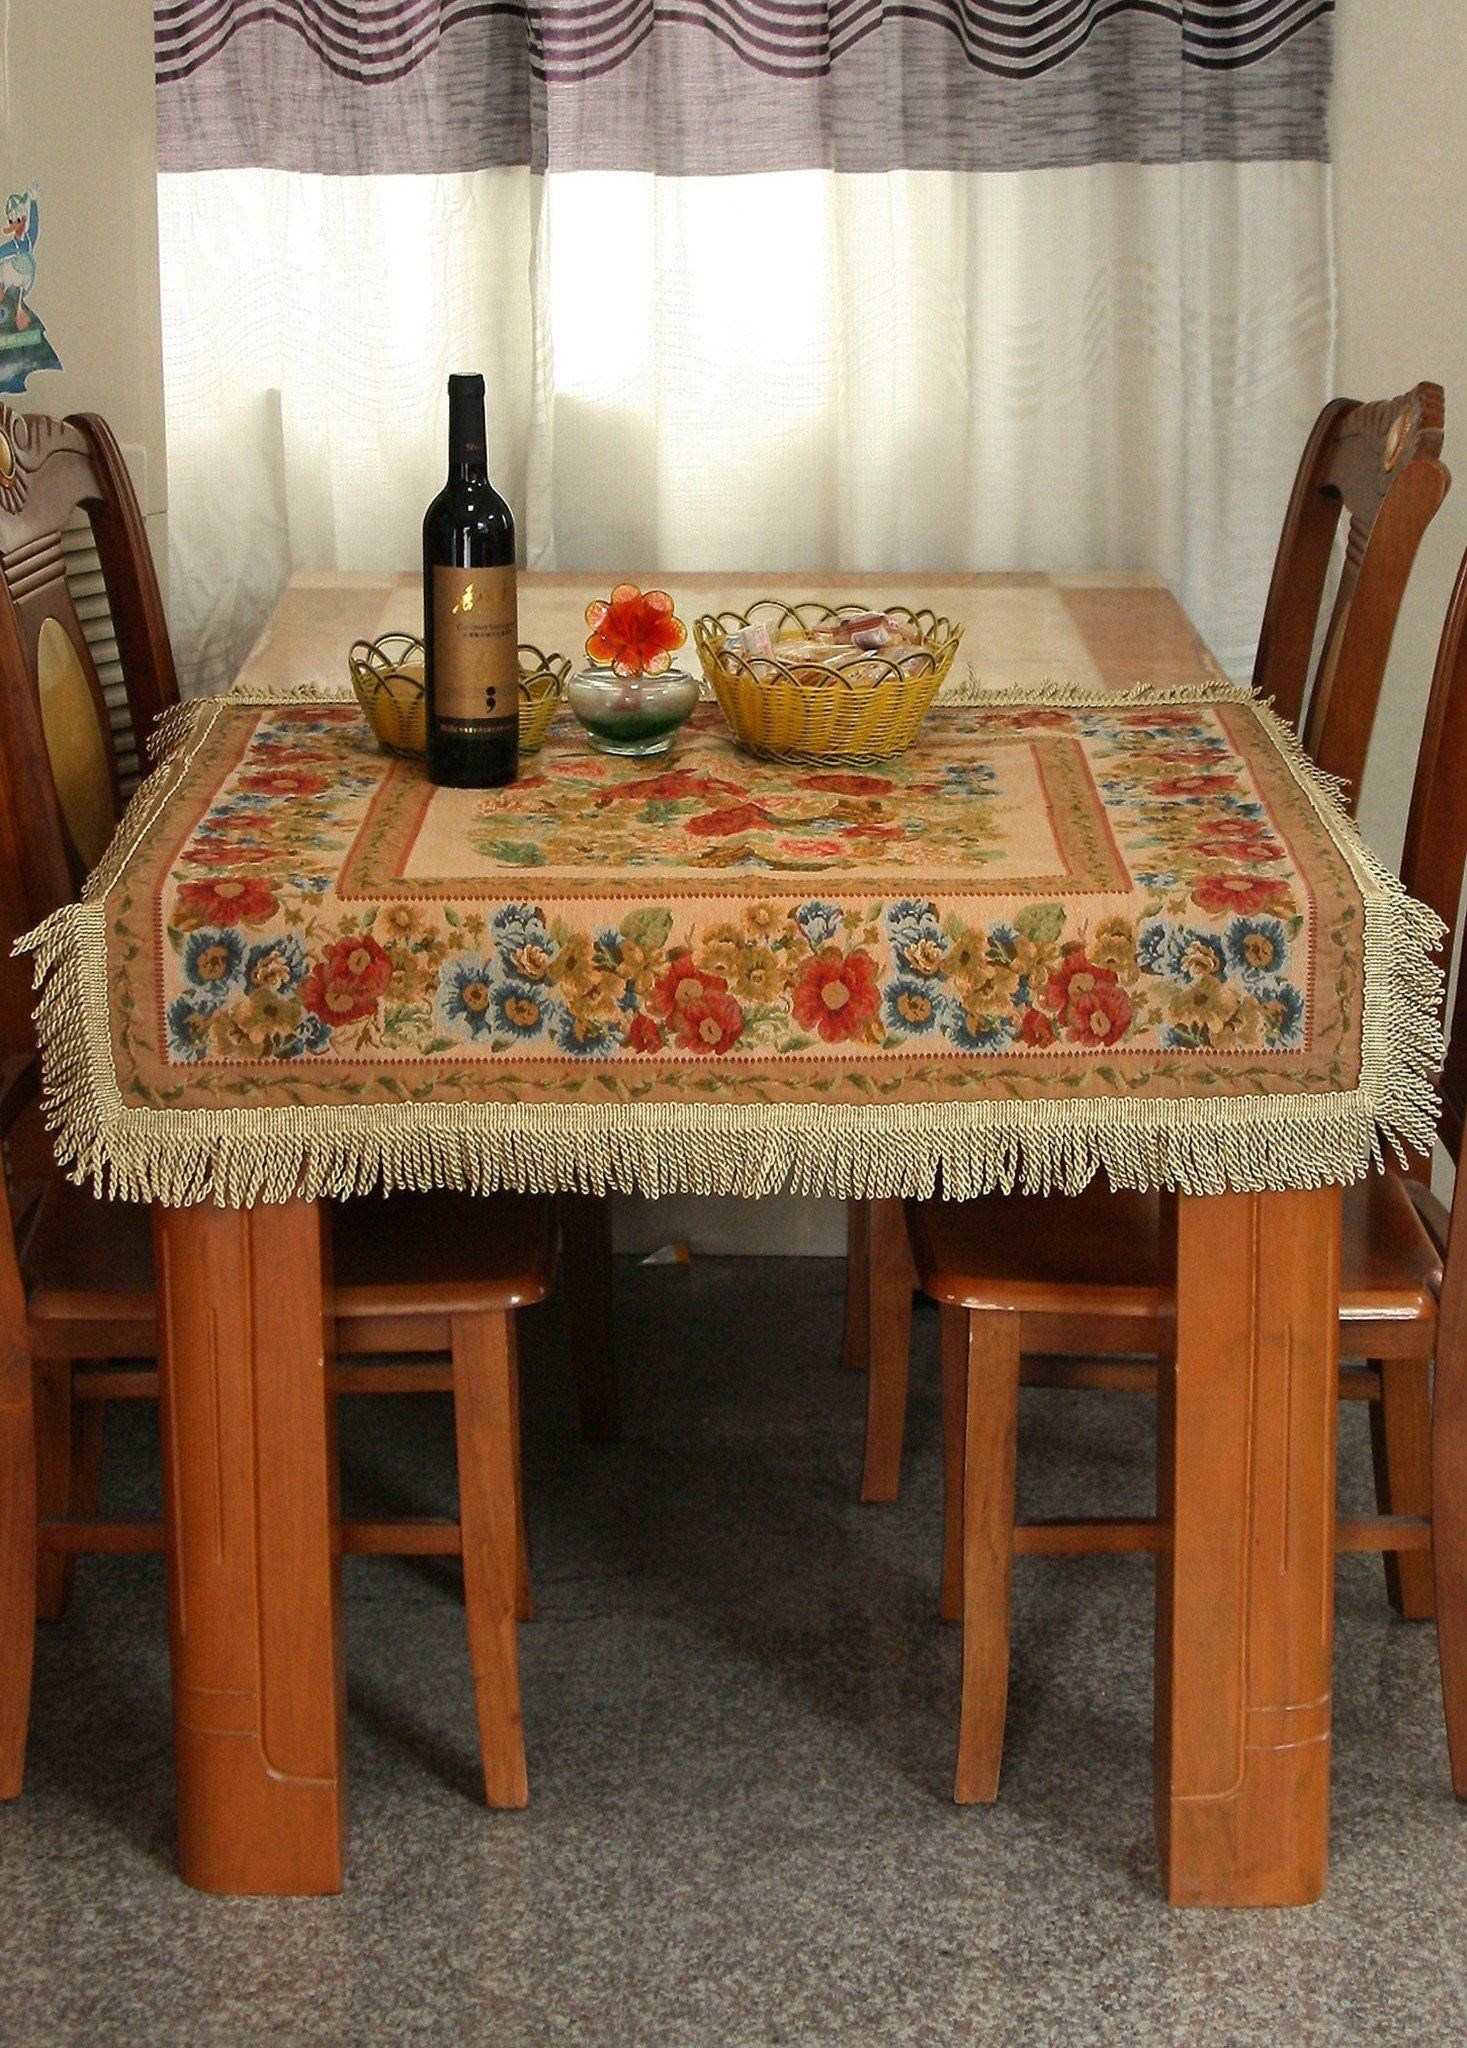 Tache Colorful Floral Country Rustic Morning Meadow Tablecloths (DBTC559845) is part of Country Clothes Rustic -  Place mat or to cover a nightstand, 35  to cover your coffee table or 59  to cover your dining table  Makes a Beautiful Centerpiece, while keeping dishes and plates from moving around the table  Matching Cushion covers; Here Matching Table Runners; Hereand Here  Item model number  DSC3098  Includes   DBTC309845 Diameter 17 inches  DBTC3098150 Diameter 59 Inches DBTC309890Diameter 35 inches DBTC30989090 35  x 35  inches DBTC3098150150 59  x 59  Inches   Material  Face 45% Cotton 55% Polyester Back 35% Cotton 65% Polyester      Care Instructions  Wash under 40°c Do Not Bleach Dry Clean No Iron Do Not Tumble Dry